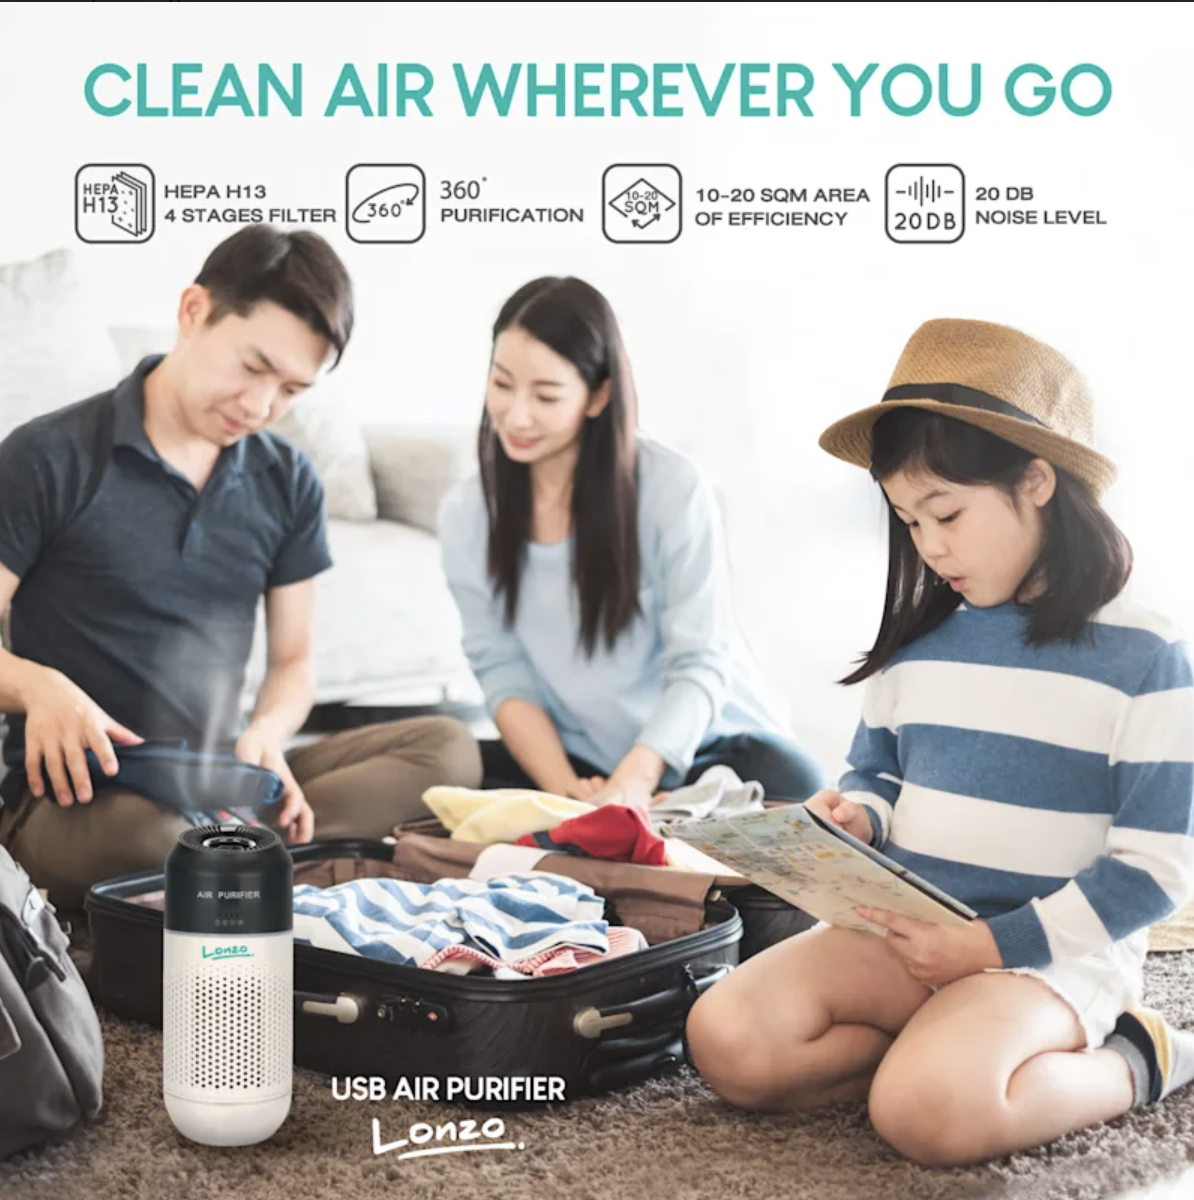 Hepelle Introduces Lonzo Mini Air Purifier in the US for Pure, Germ-Free Air